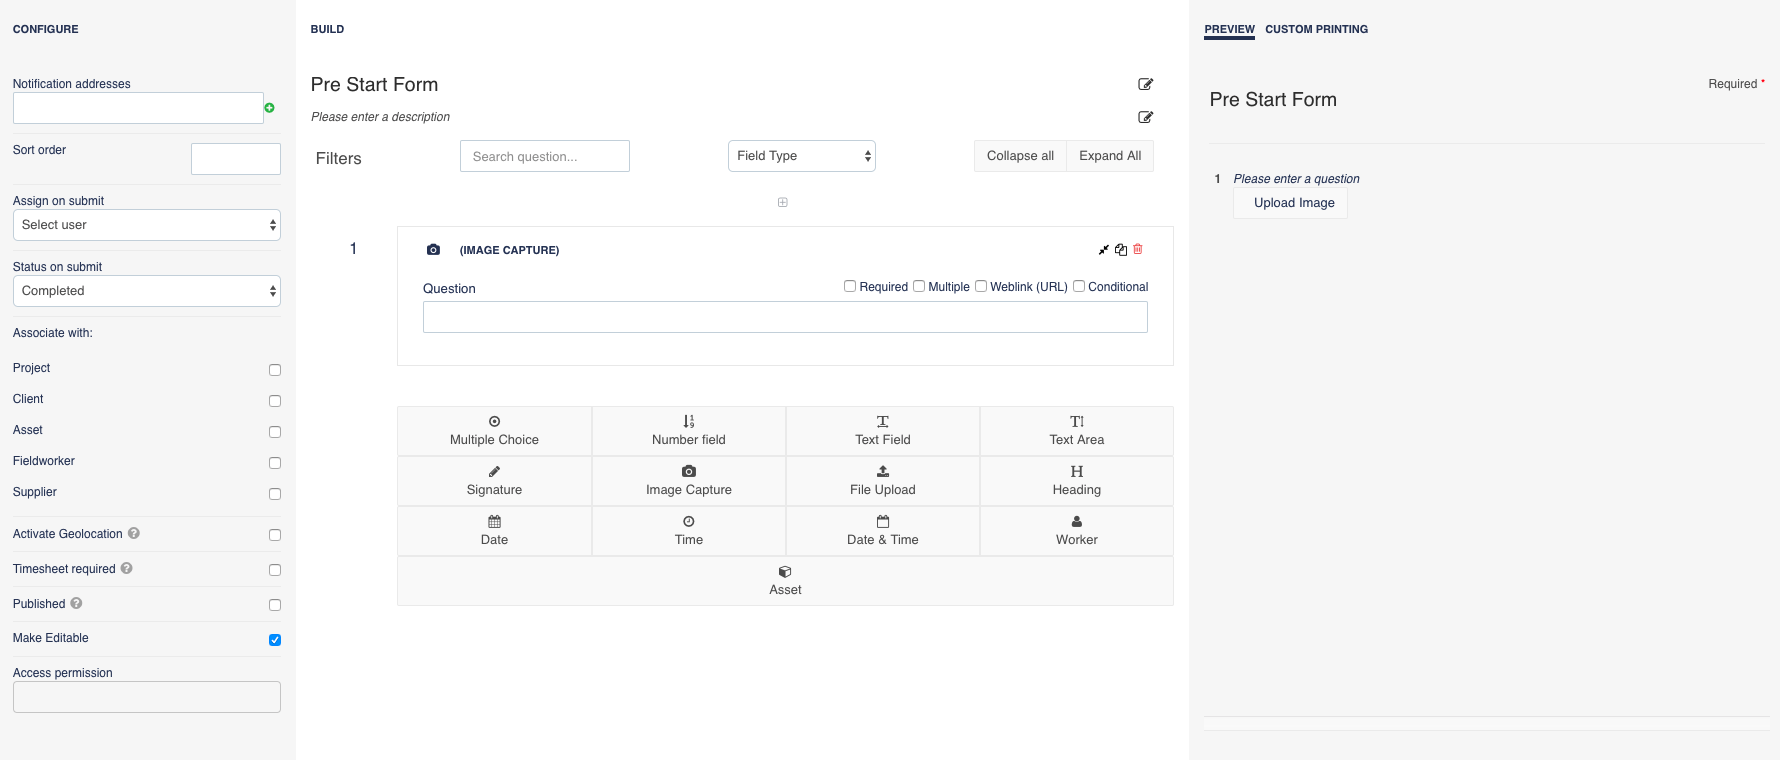 Assignar screenshot: Build custom online forms from scratch or modify templates before sharing with fieldworkers and capturing the results in real time